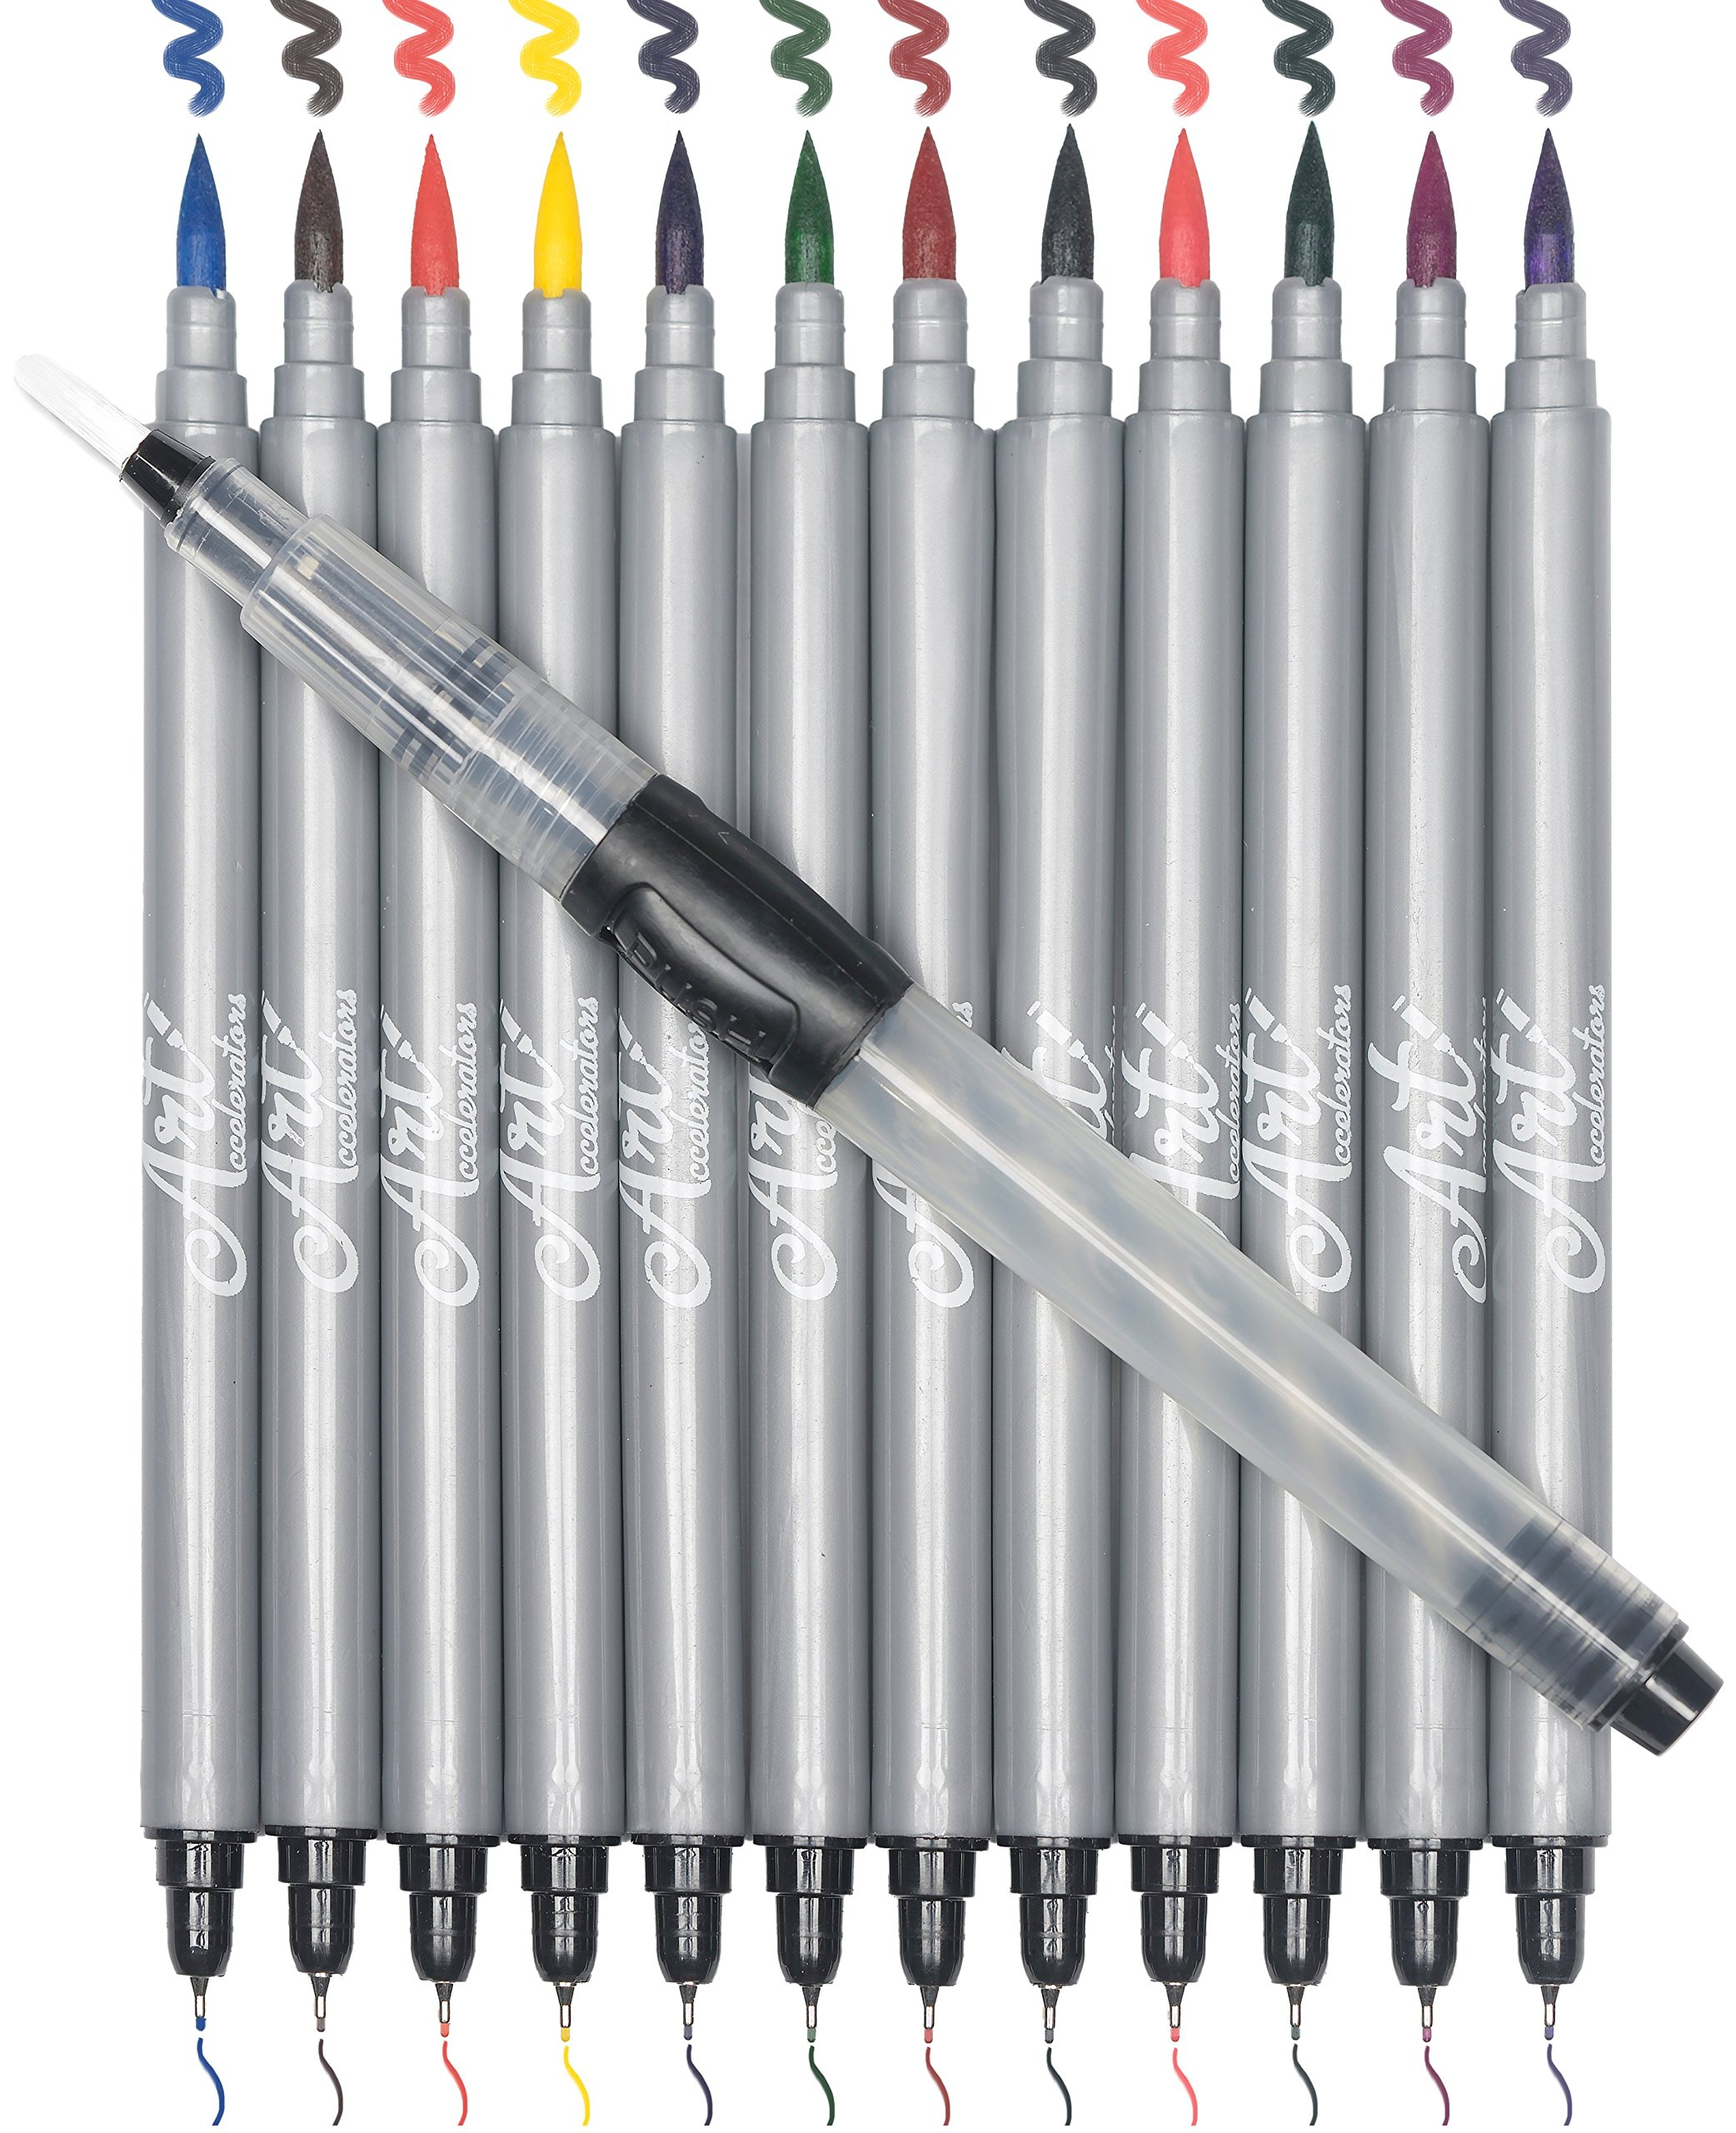 Watercolor Brush Markers - Dual Tips for Blending and Fine Details | Colorful Double-Sided Pens for Watercolor and Lettering Art | 12 Colors + 1 Water Brush | Non-Toxic and Safe for Kids and Adults